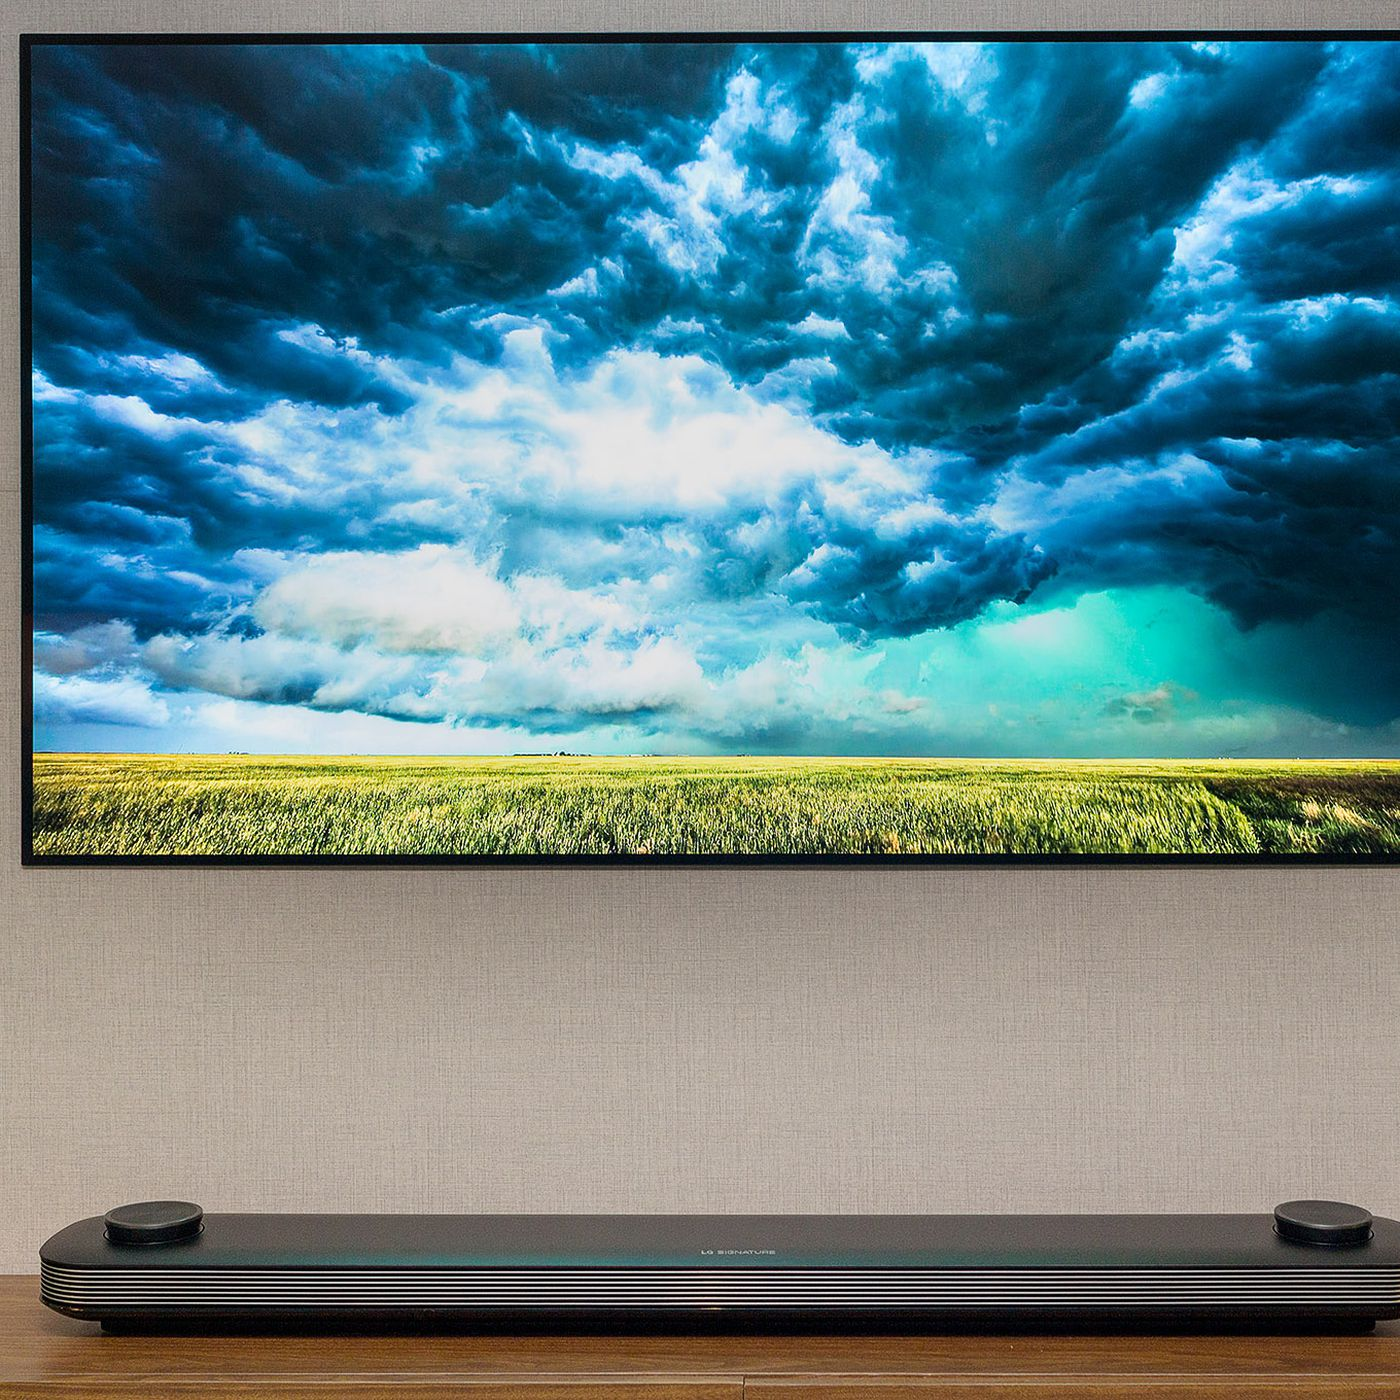 LG s new 77 inch OLED wallpaper TV is now available for the price of a new car The Verge